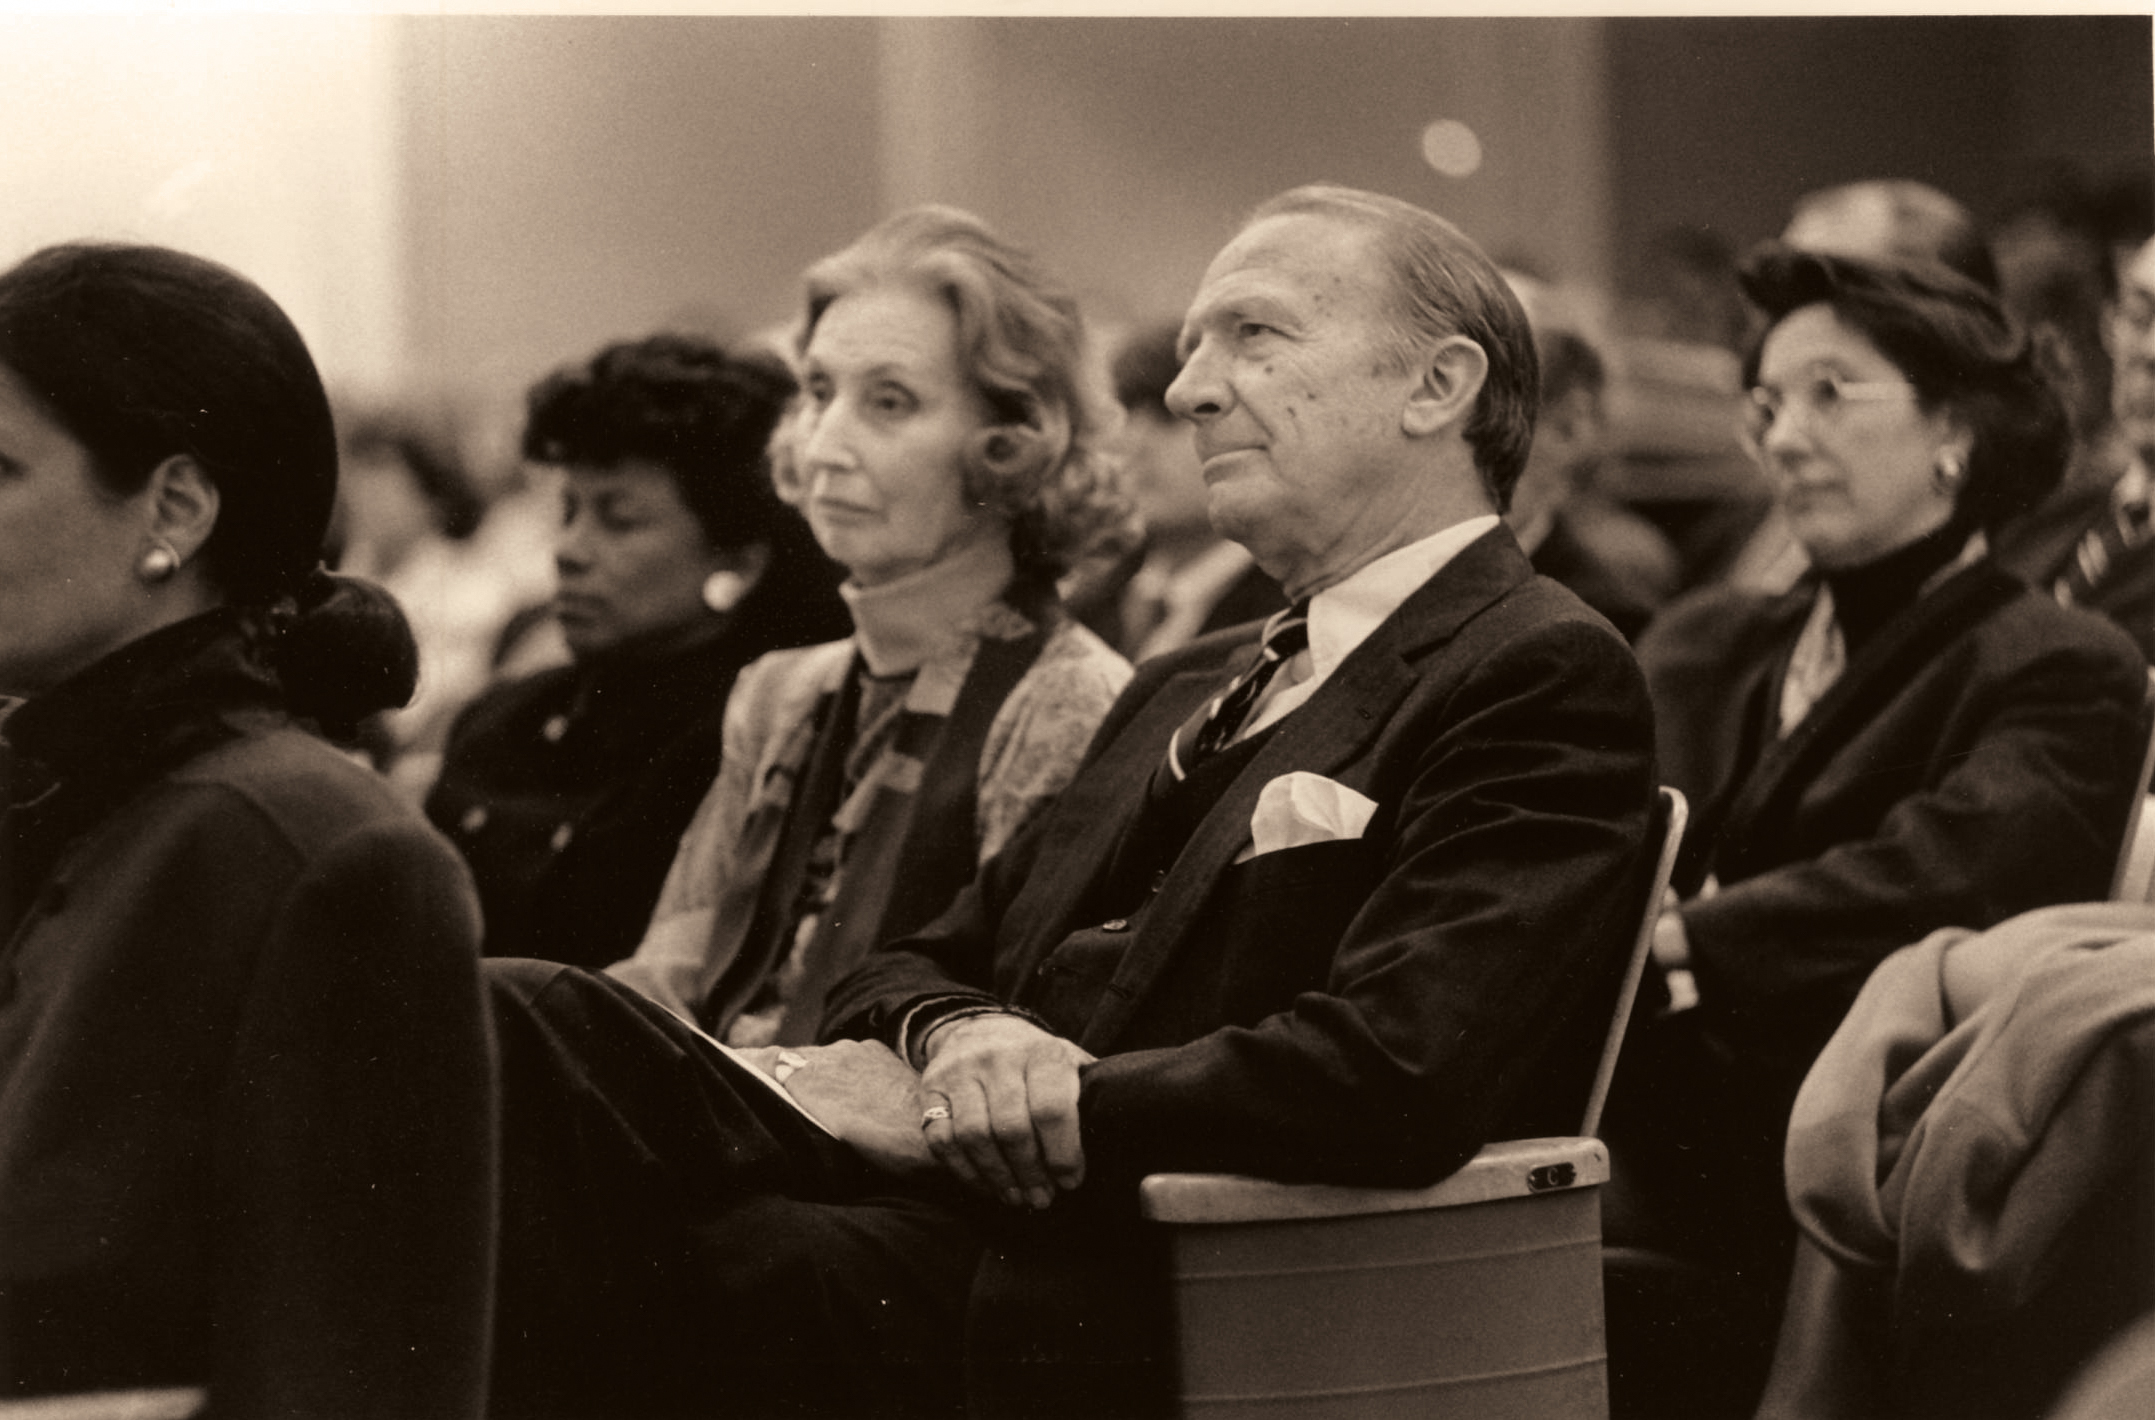 Priscilla and Kelly Clark listen to Robert Stern's lecture, during the April 20, 1991, Ohrstrom Library dedication.